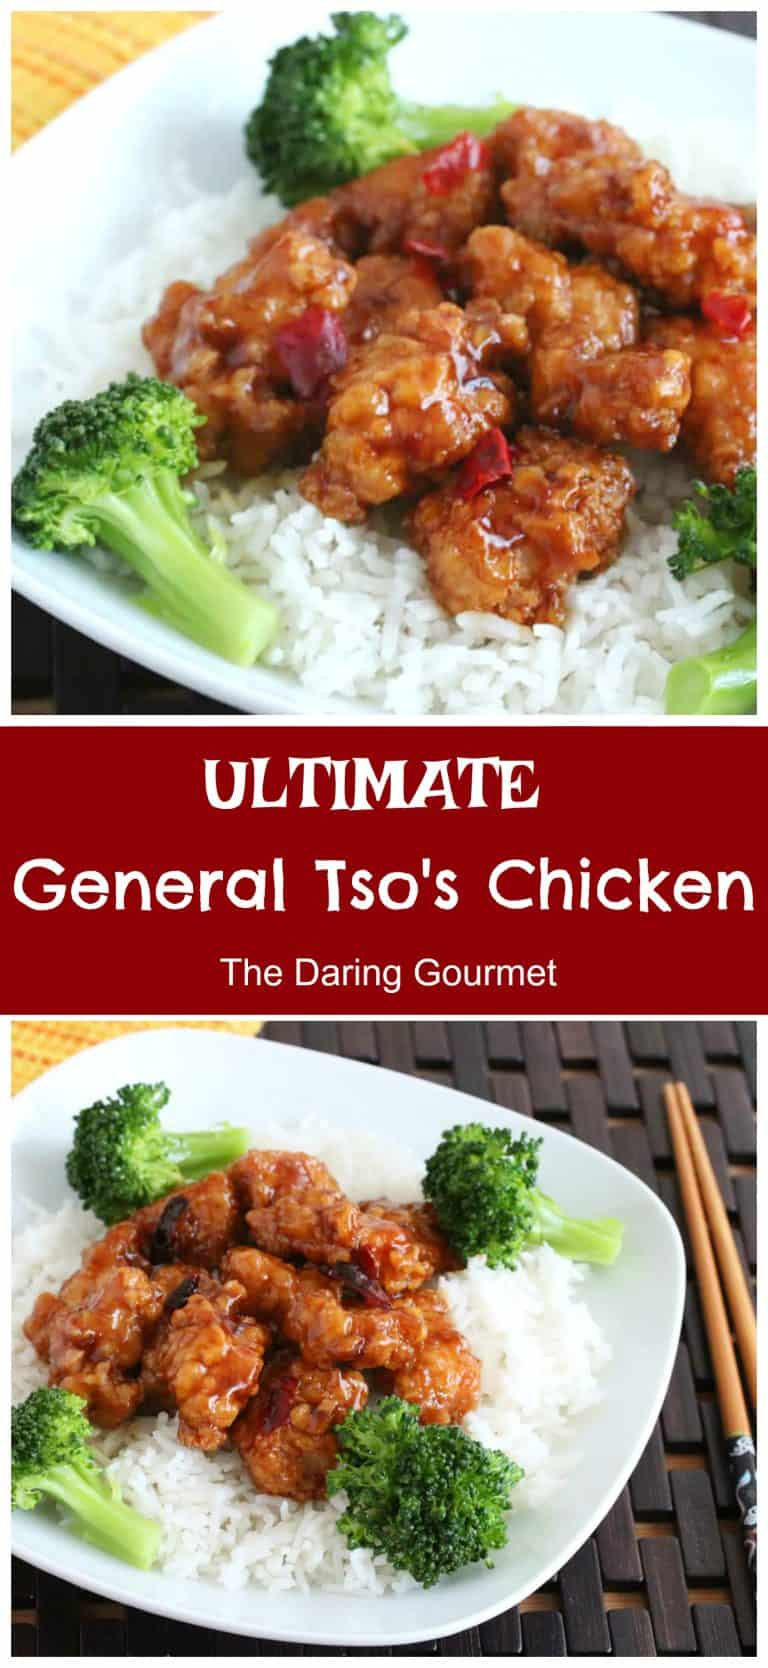 general tso's chicken recipe best chinese authentic panda express copycat